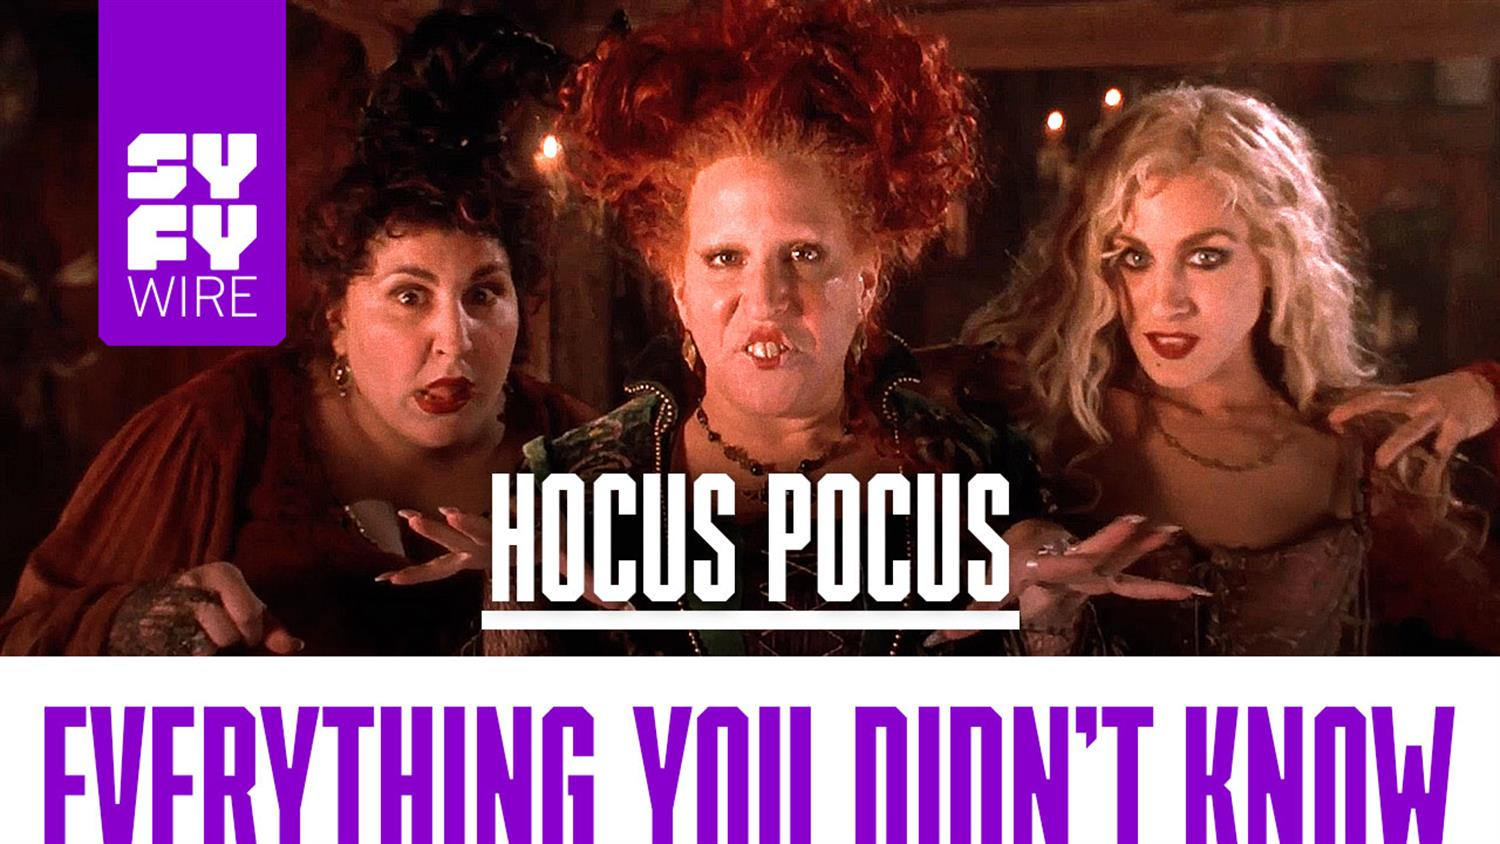 Hocus Pocus: Everything You Didn't Know